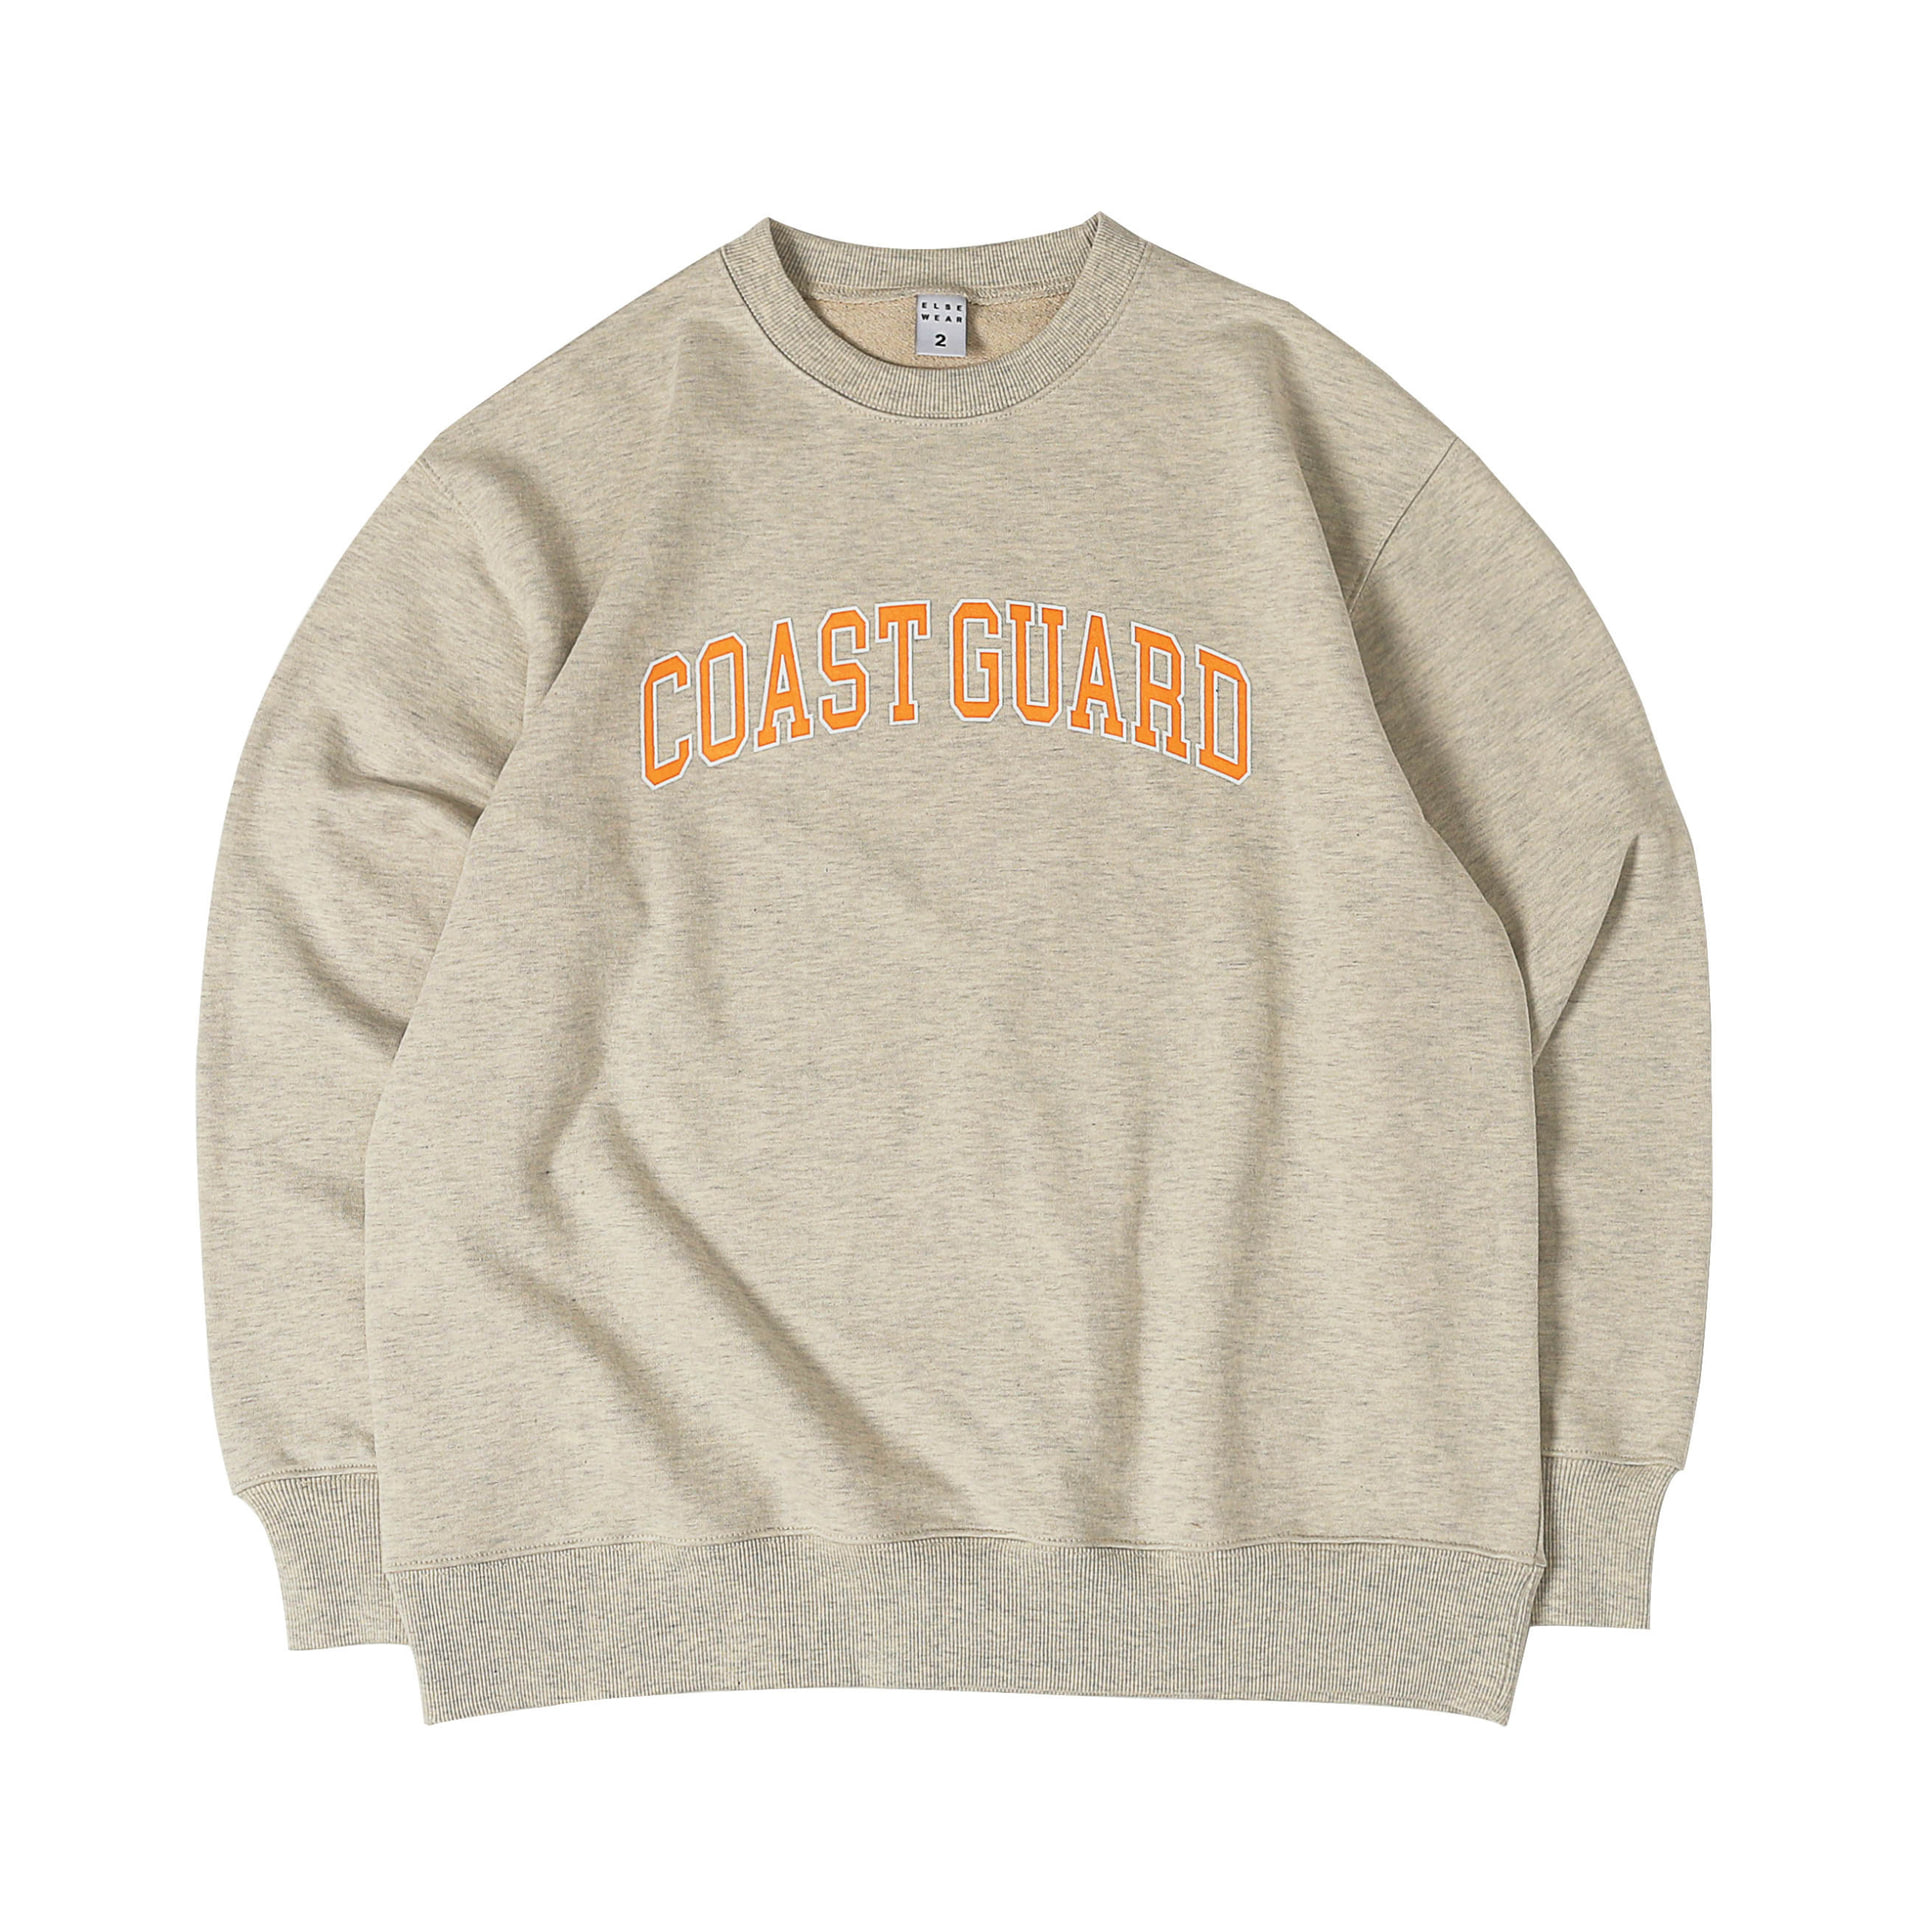 COAST GUARD SWEAT (Oatmeal)